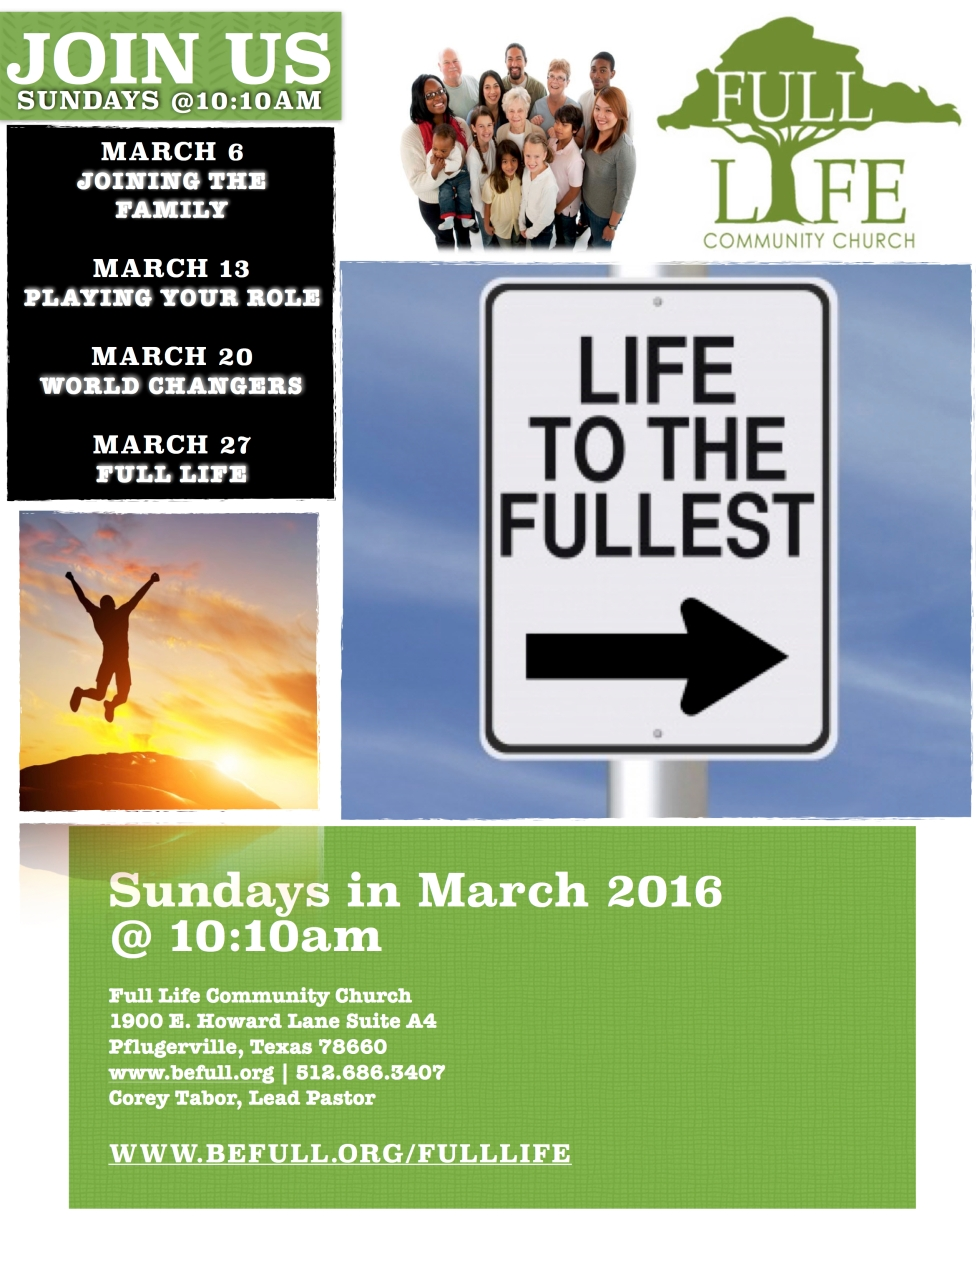 Living Life to the Fullest Poster